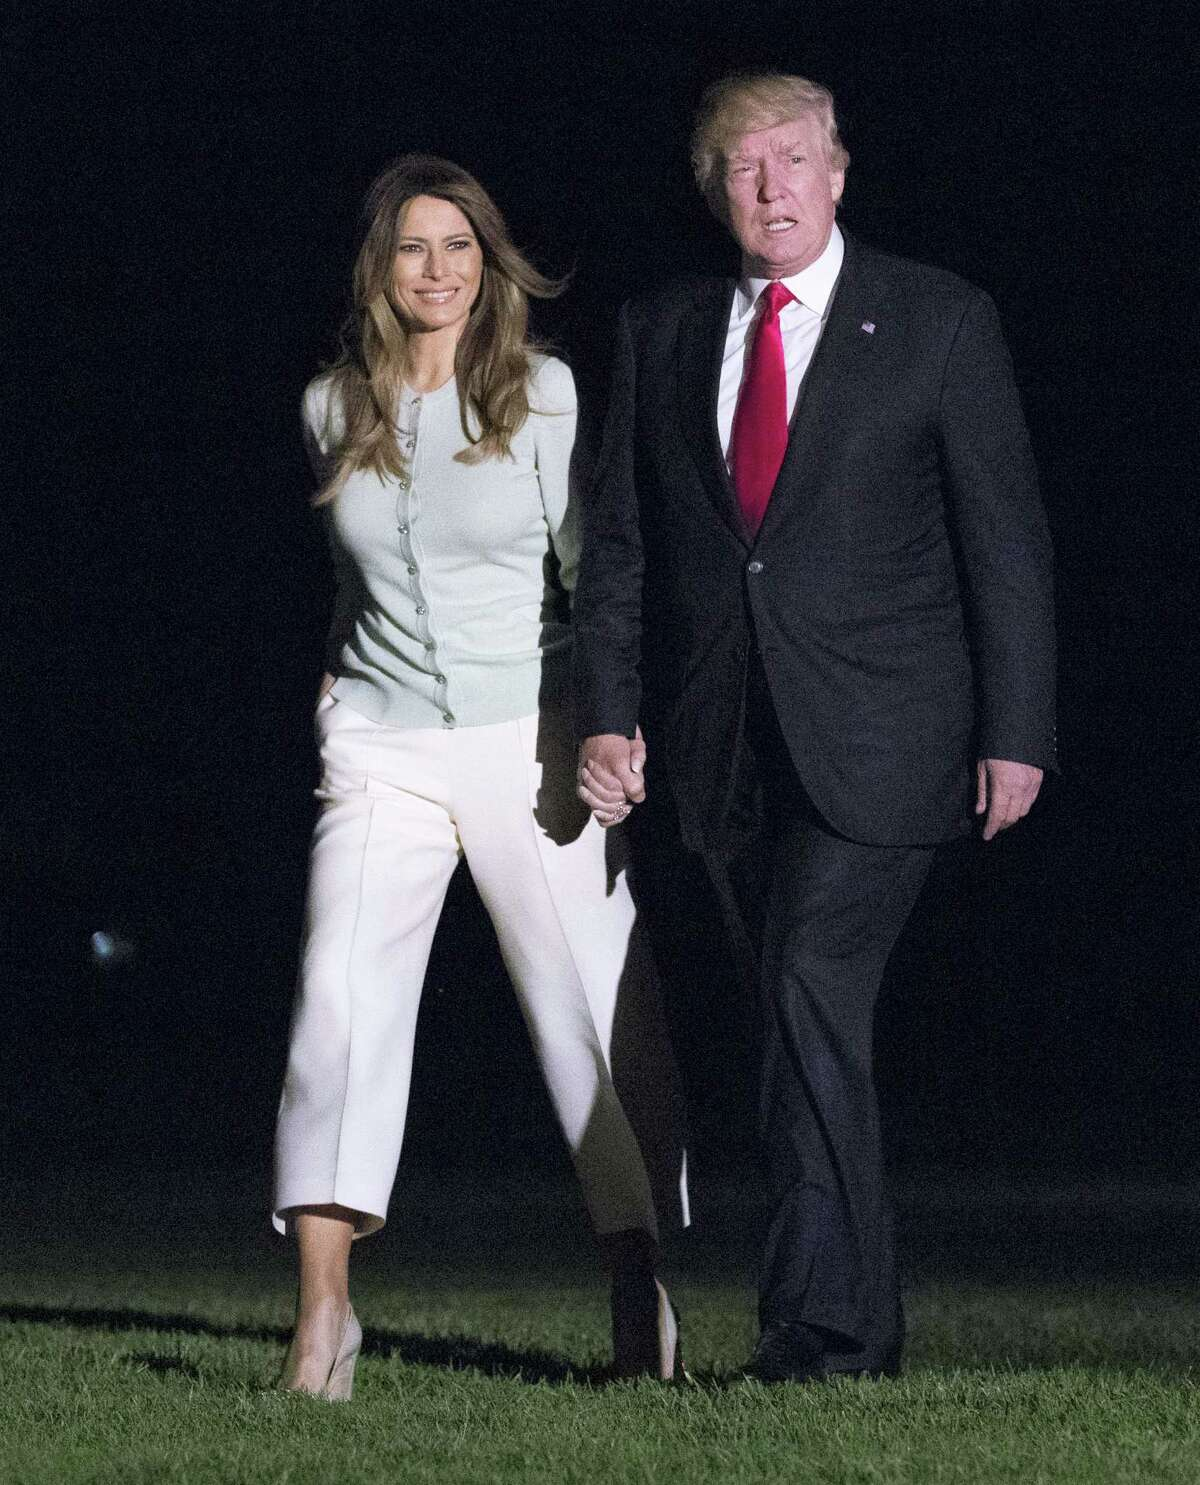 President Donald Trump and first lady Melania Trump walk from Marine One across the South Lawn to White House in Washington on May 27, 2017 as they return from Sigonella, Italy.